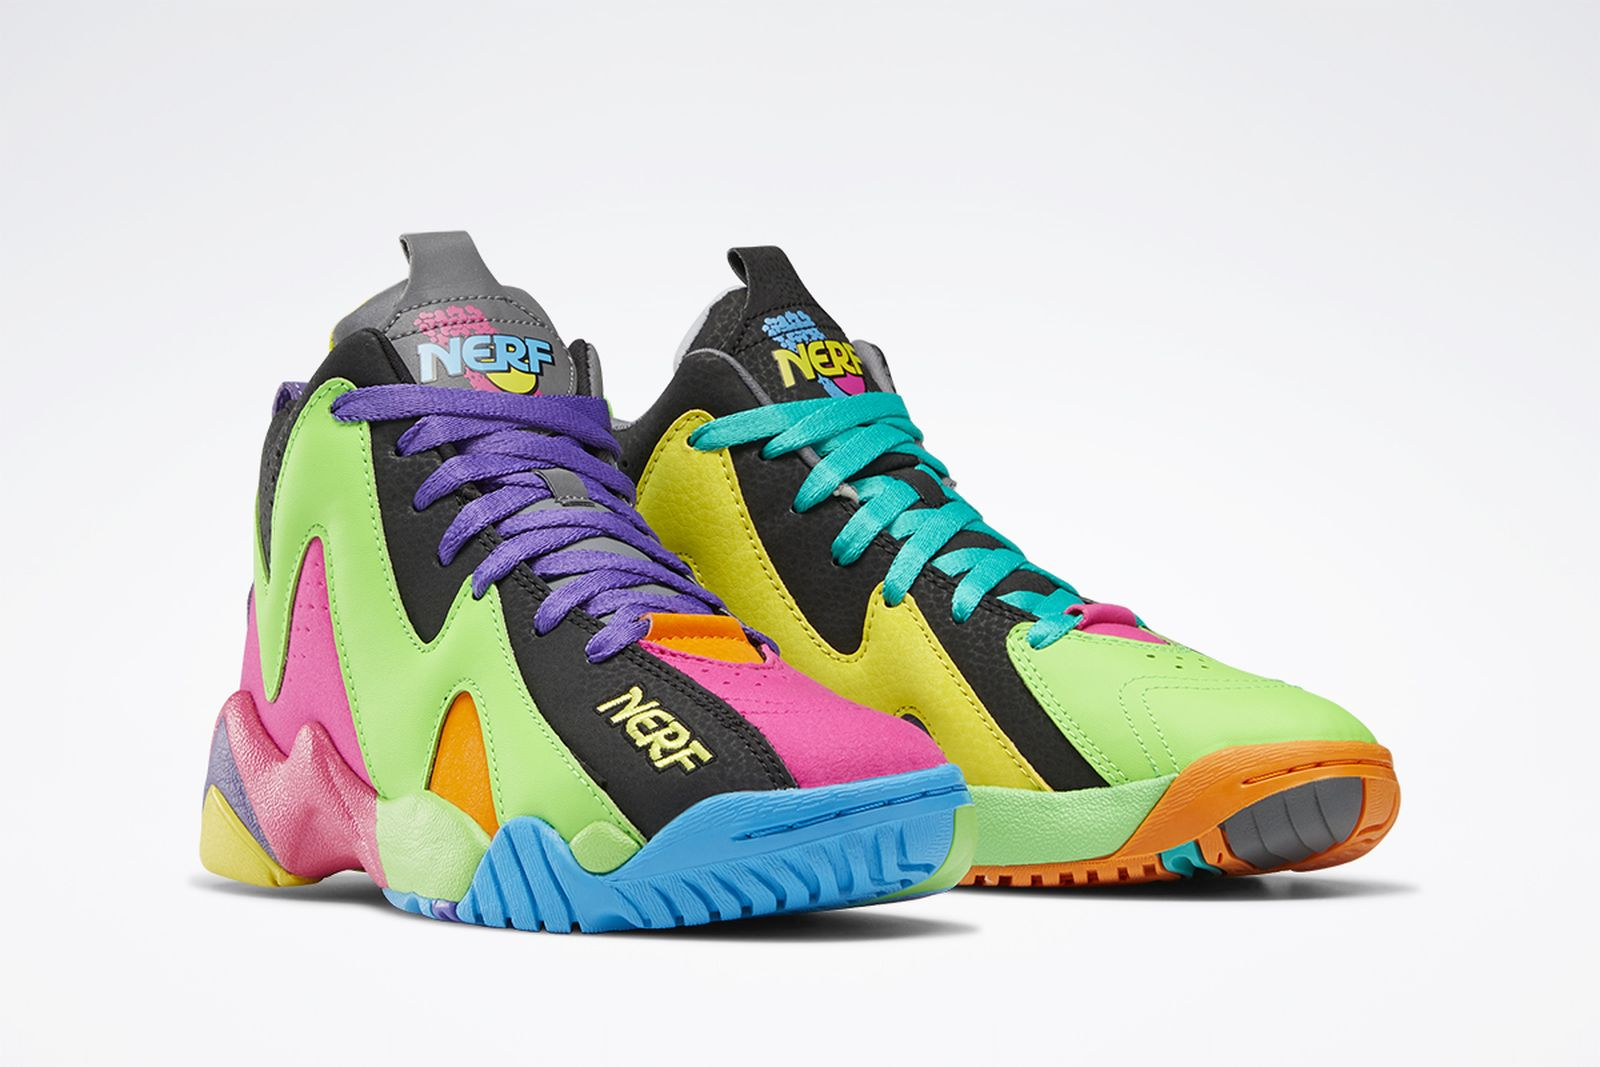 nerf-reebok-retro-basketball-collection-release-date-price-07